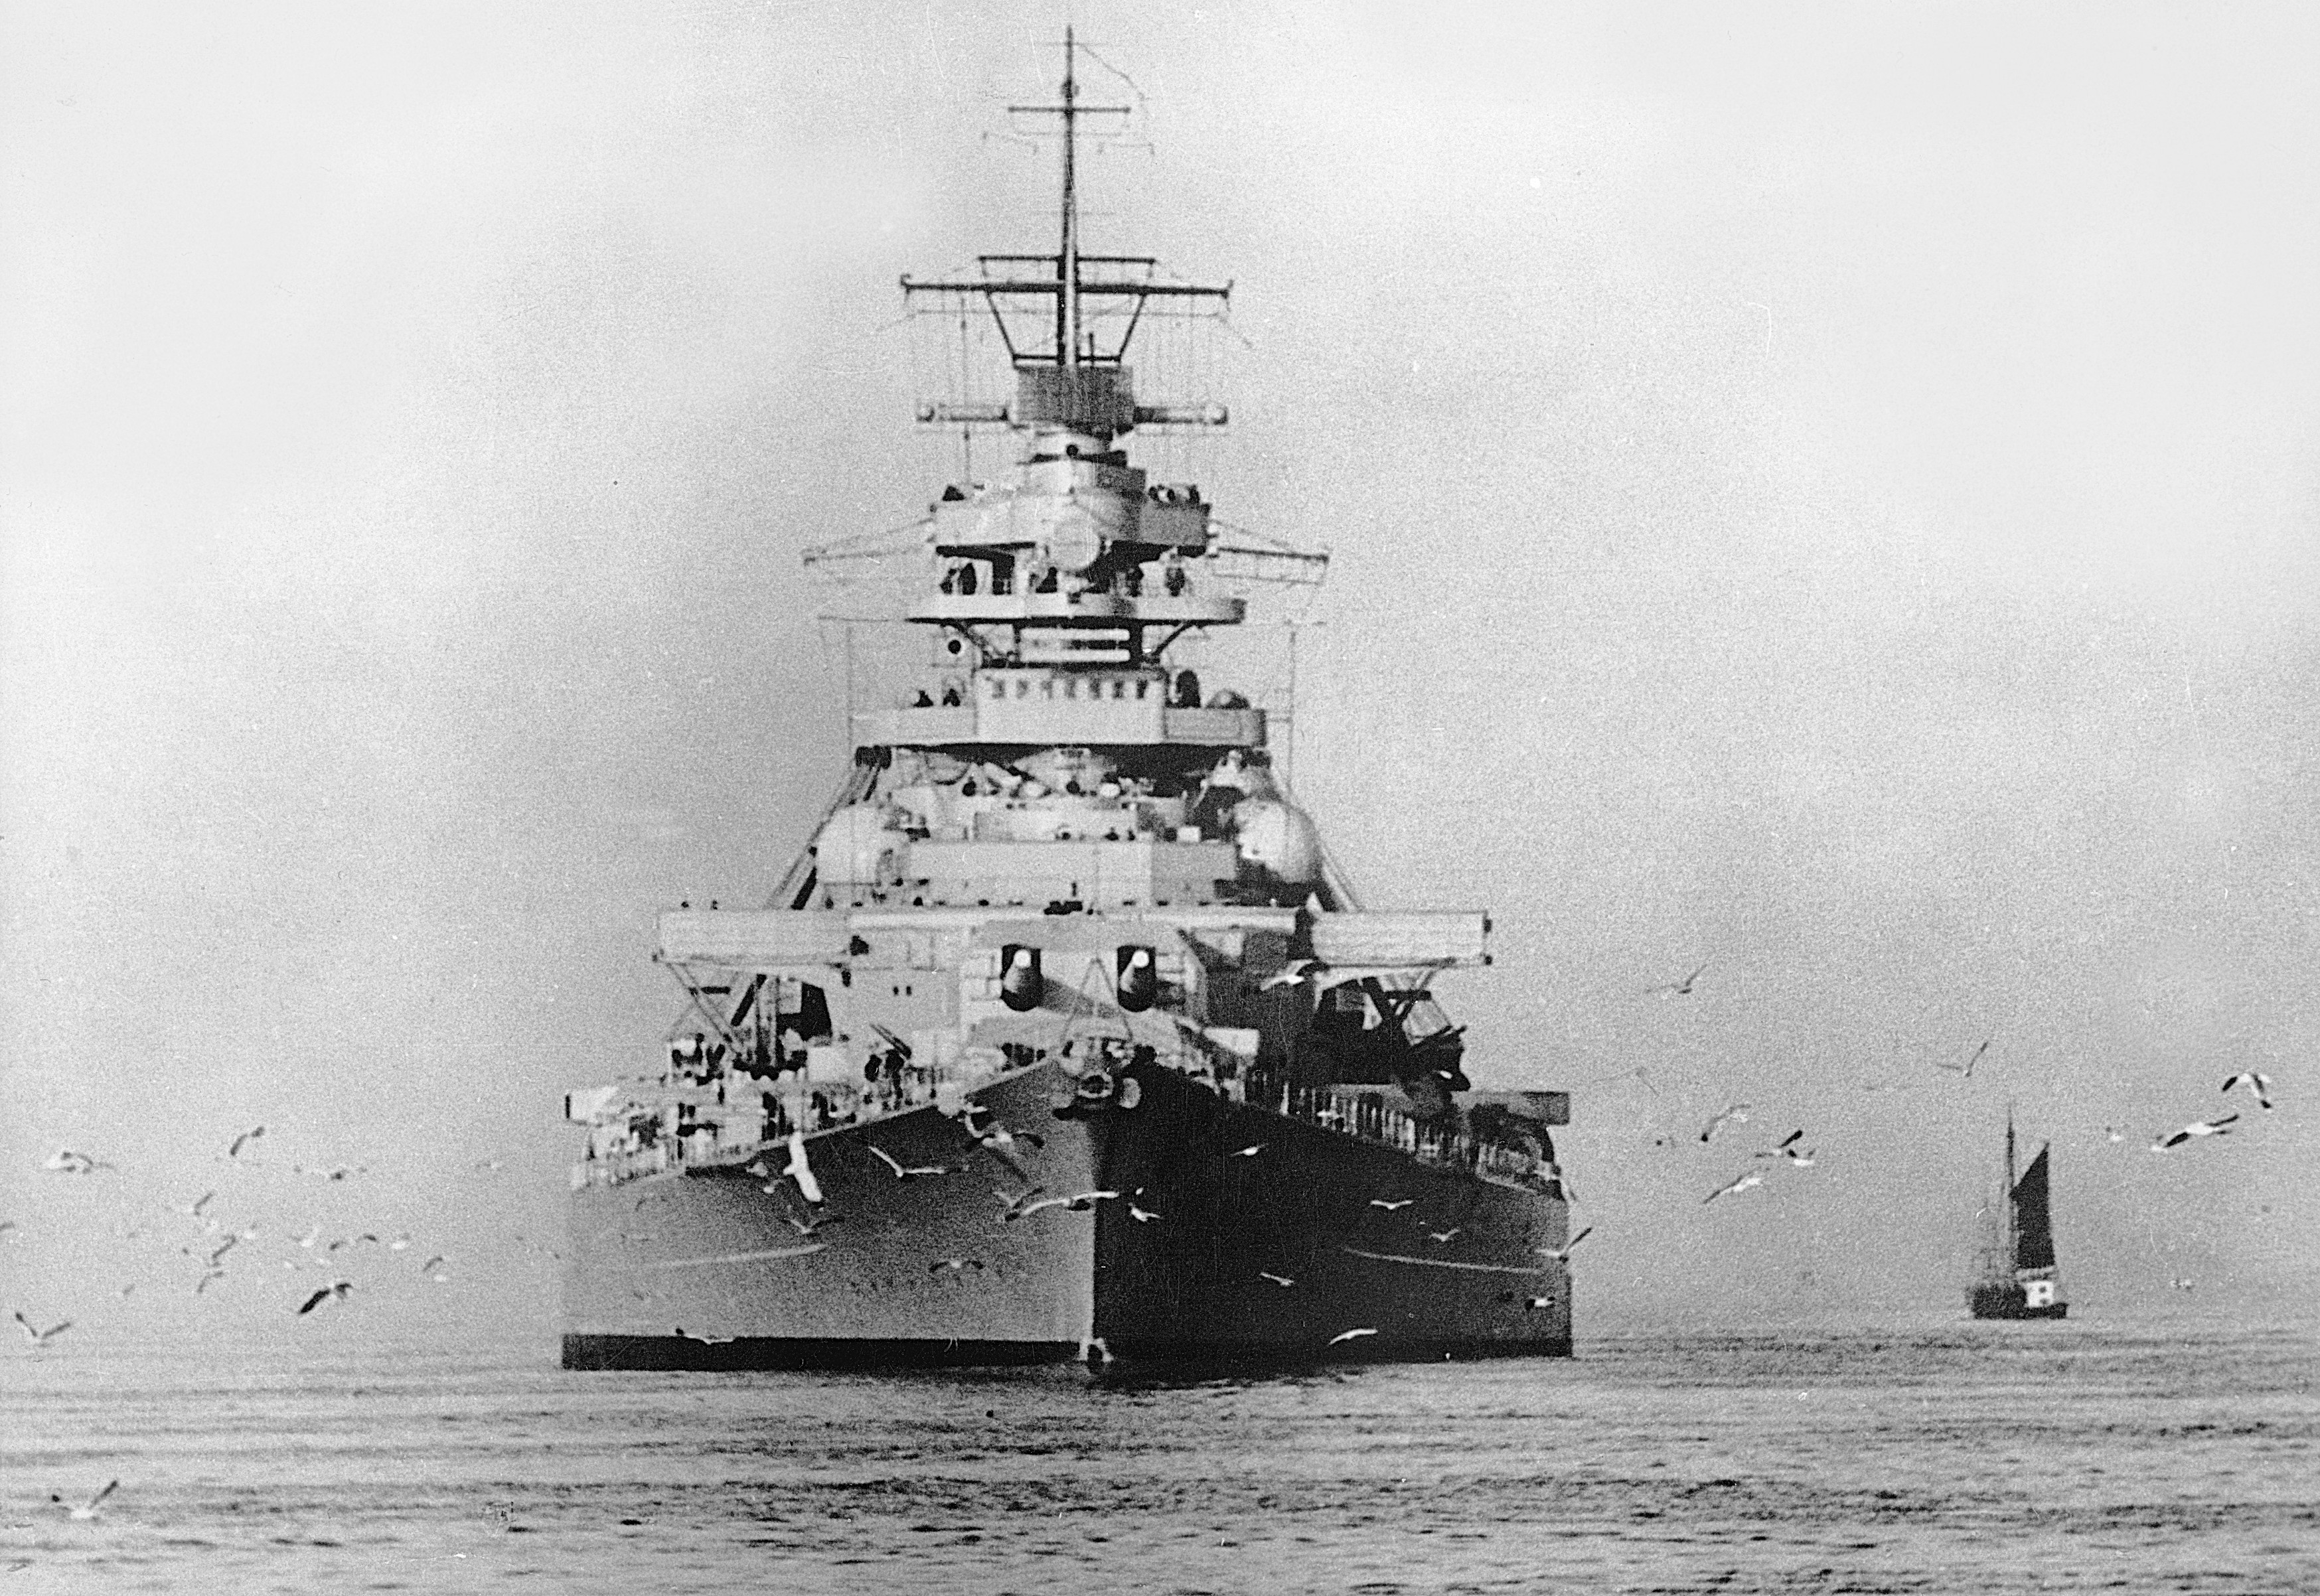 BATTLESHIP BISMARCK image galleries   imageKBcom 3495x2405